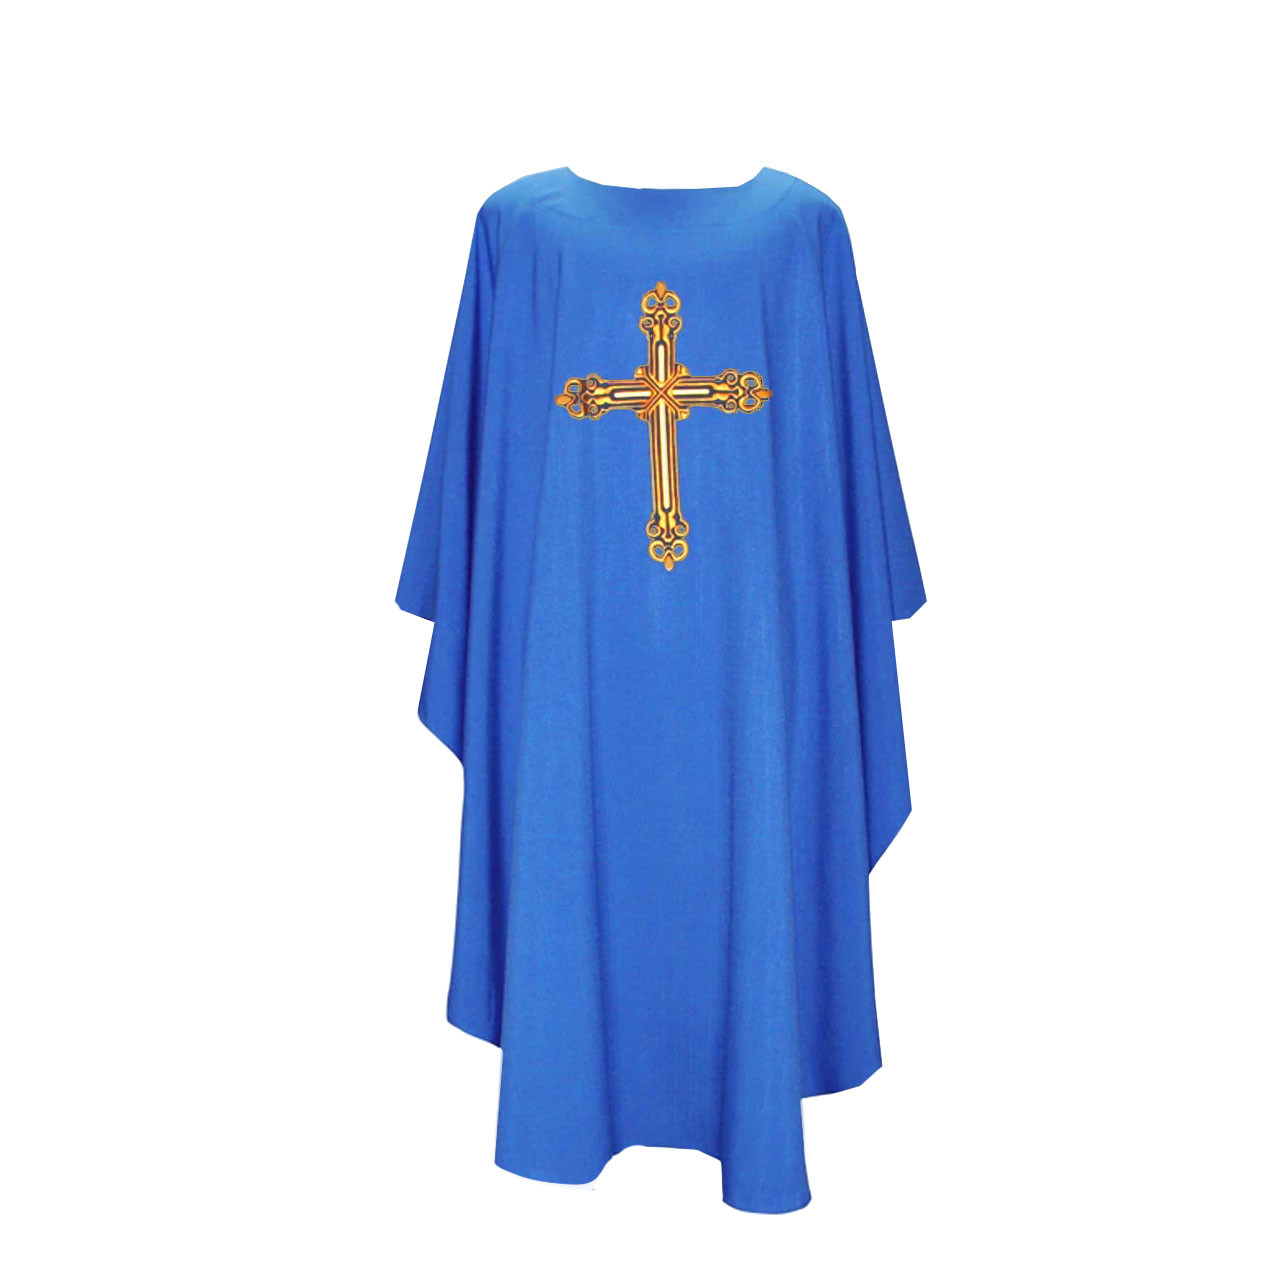 BV 2026 Chasuble w/Embroidered Cross Design